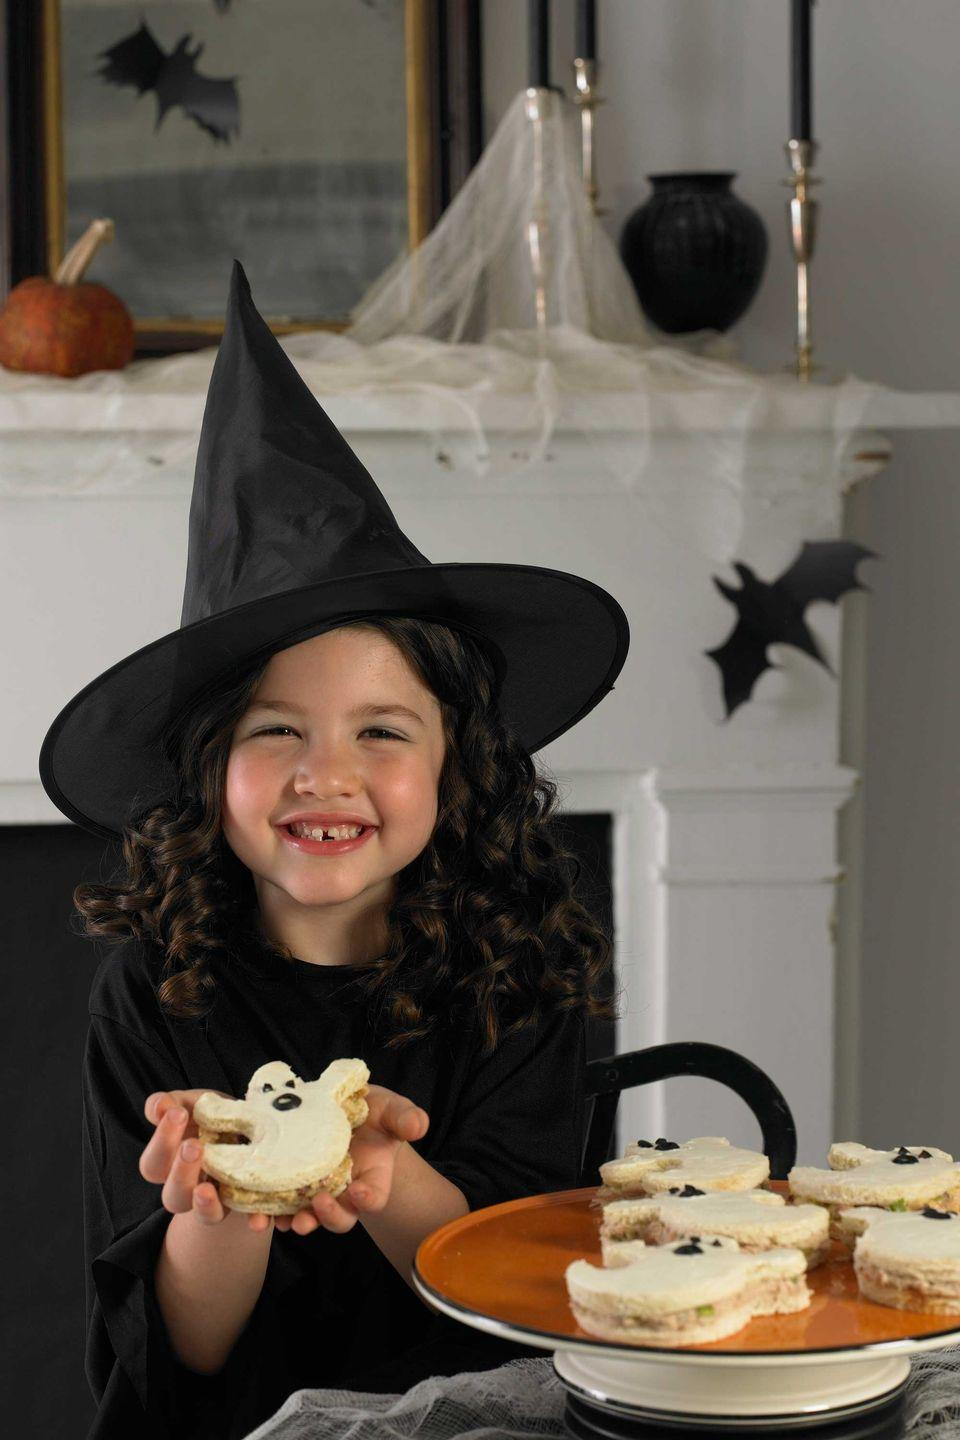 """<p>To create these friendly apparitions, simply cut through white bread with a ghost-shaped cookie cutter and spread some chicken salad between two slices. Add a thin layer of cream cheese to the top first then decorate with olive slices.</p><p><em><a href=""""https://www.womansday.com/food-recipes/food-drinks/recipes/a9993/little-ghost-sandwiches-recipe-121372/"""" rel=""""nofollow noopener"""" target=""""_blank"""" data-ylk=""""slk:Get the Ghost Sandwiches recipe."""" class=""""link rapid-noclick-resp"""">Get the Ghost Sandwiches recipe.</a></em> </p>"""